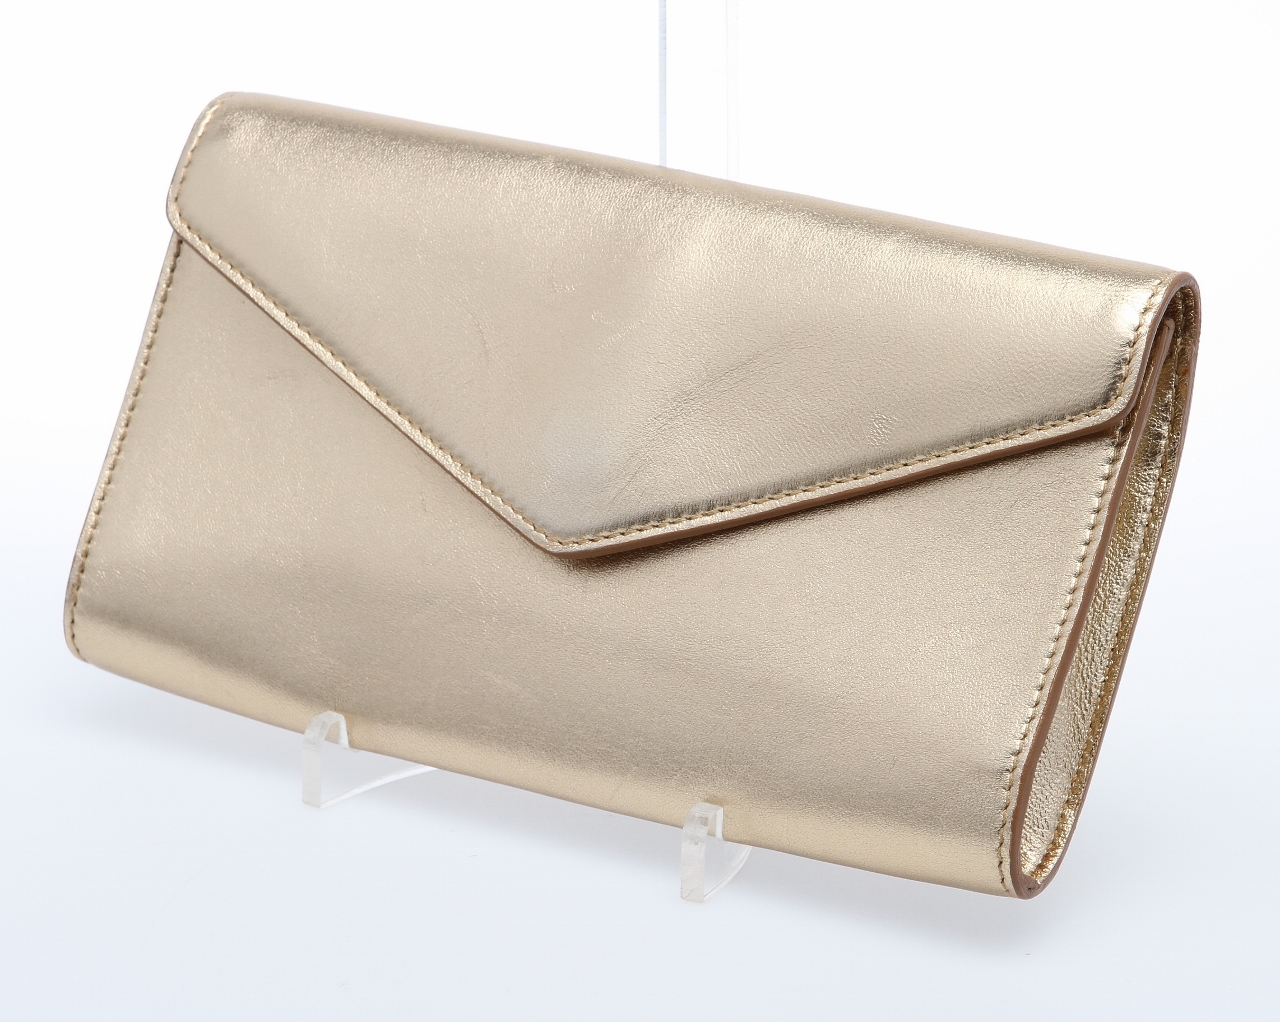 ysl bags online - YSL Y-Mail Clutch in Metallic Gold Leather - Queen Bee of Beverly ...